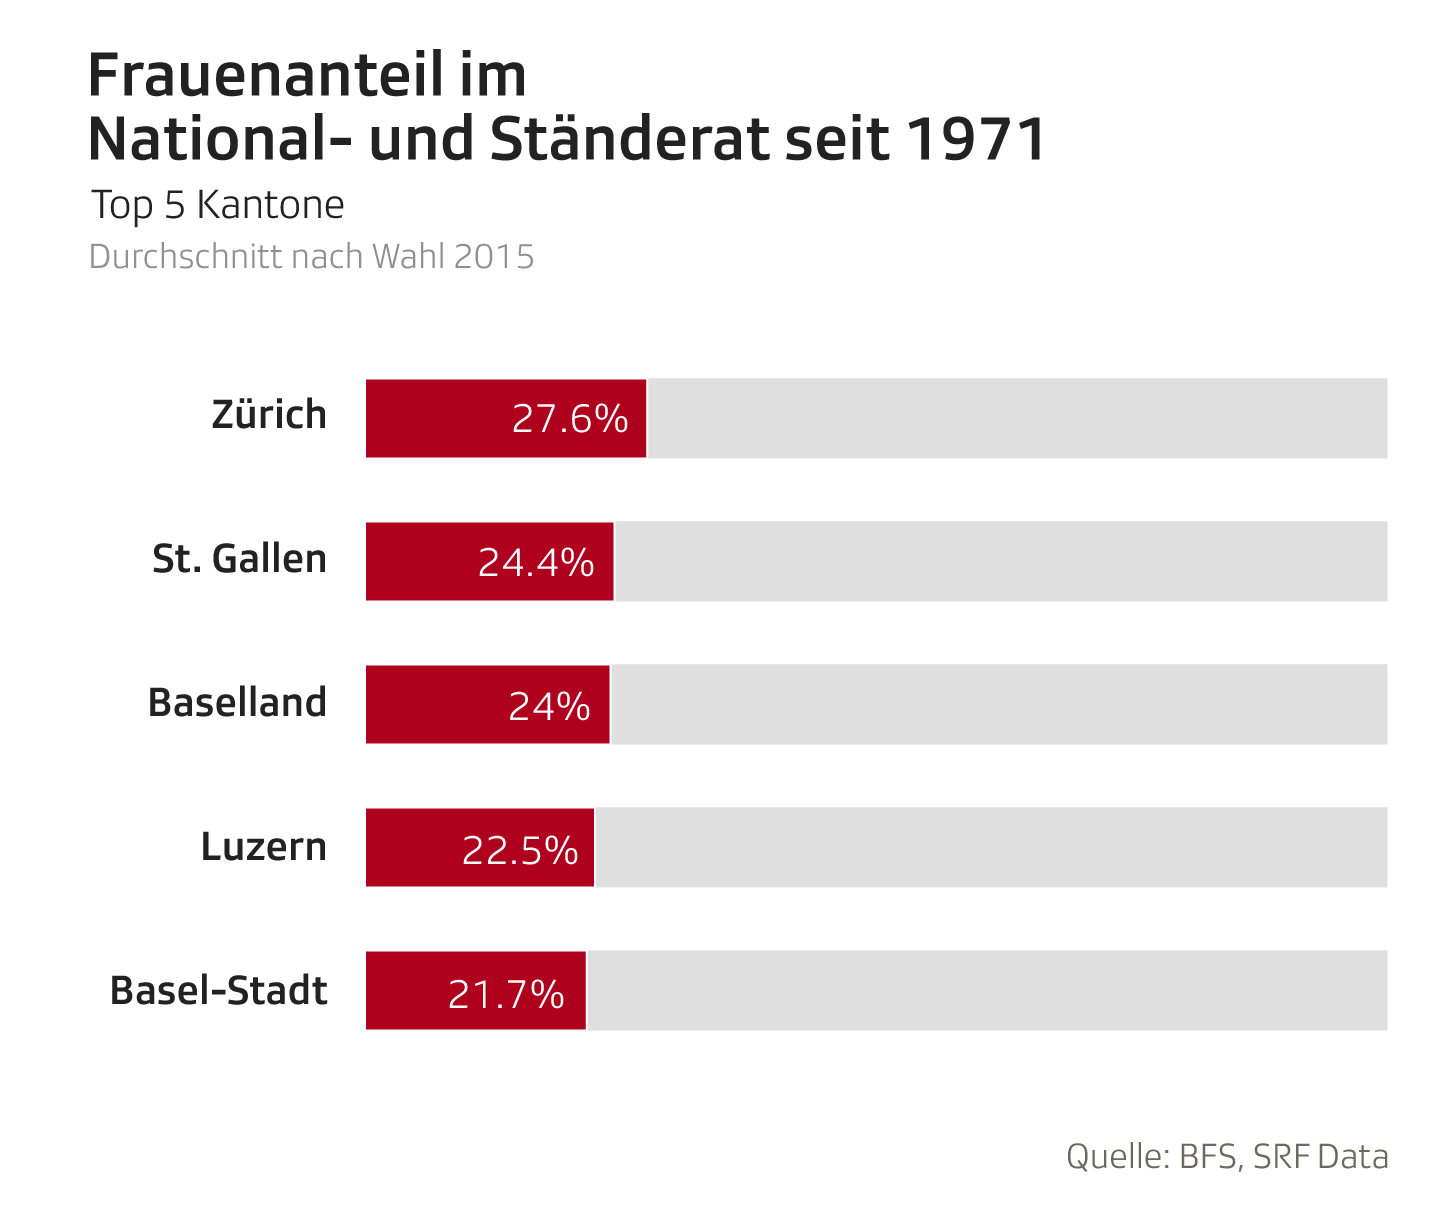 Frauenanteil im Parlament Top 5 Kantone